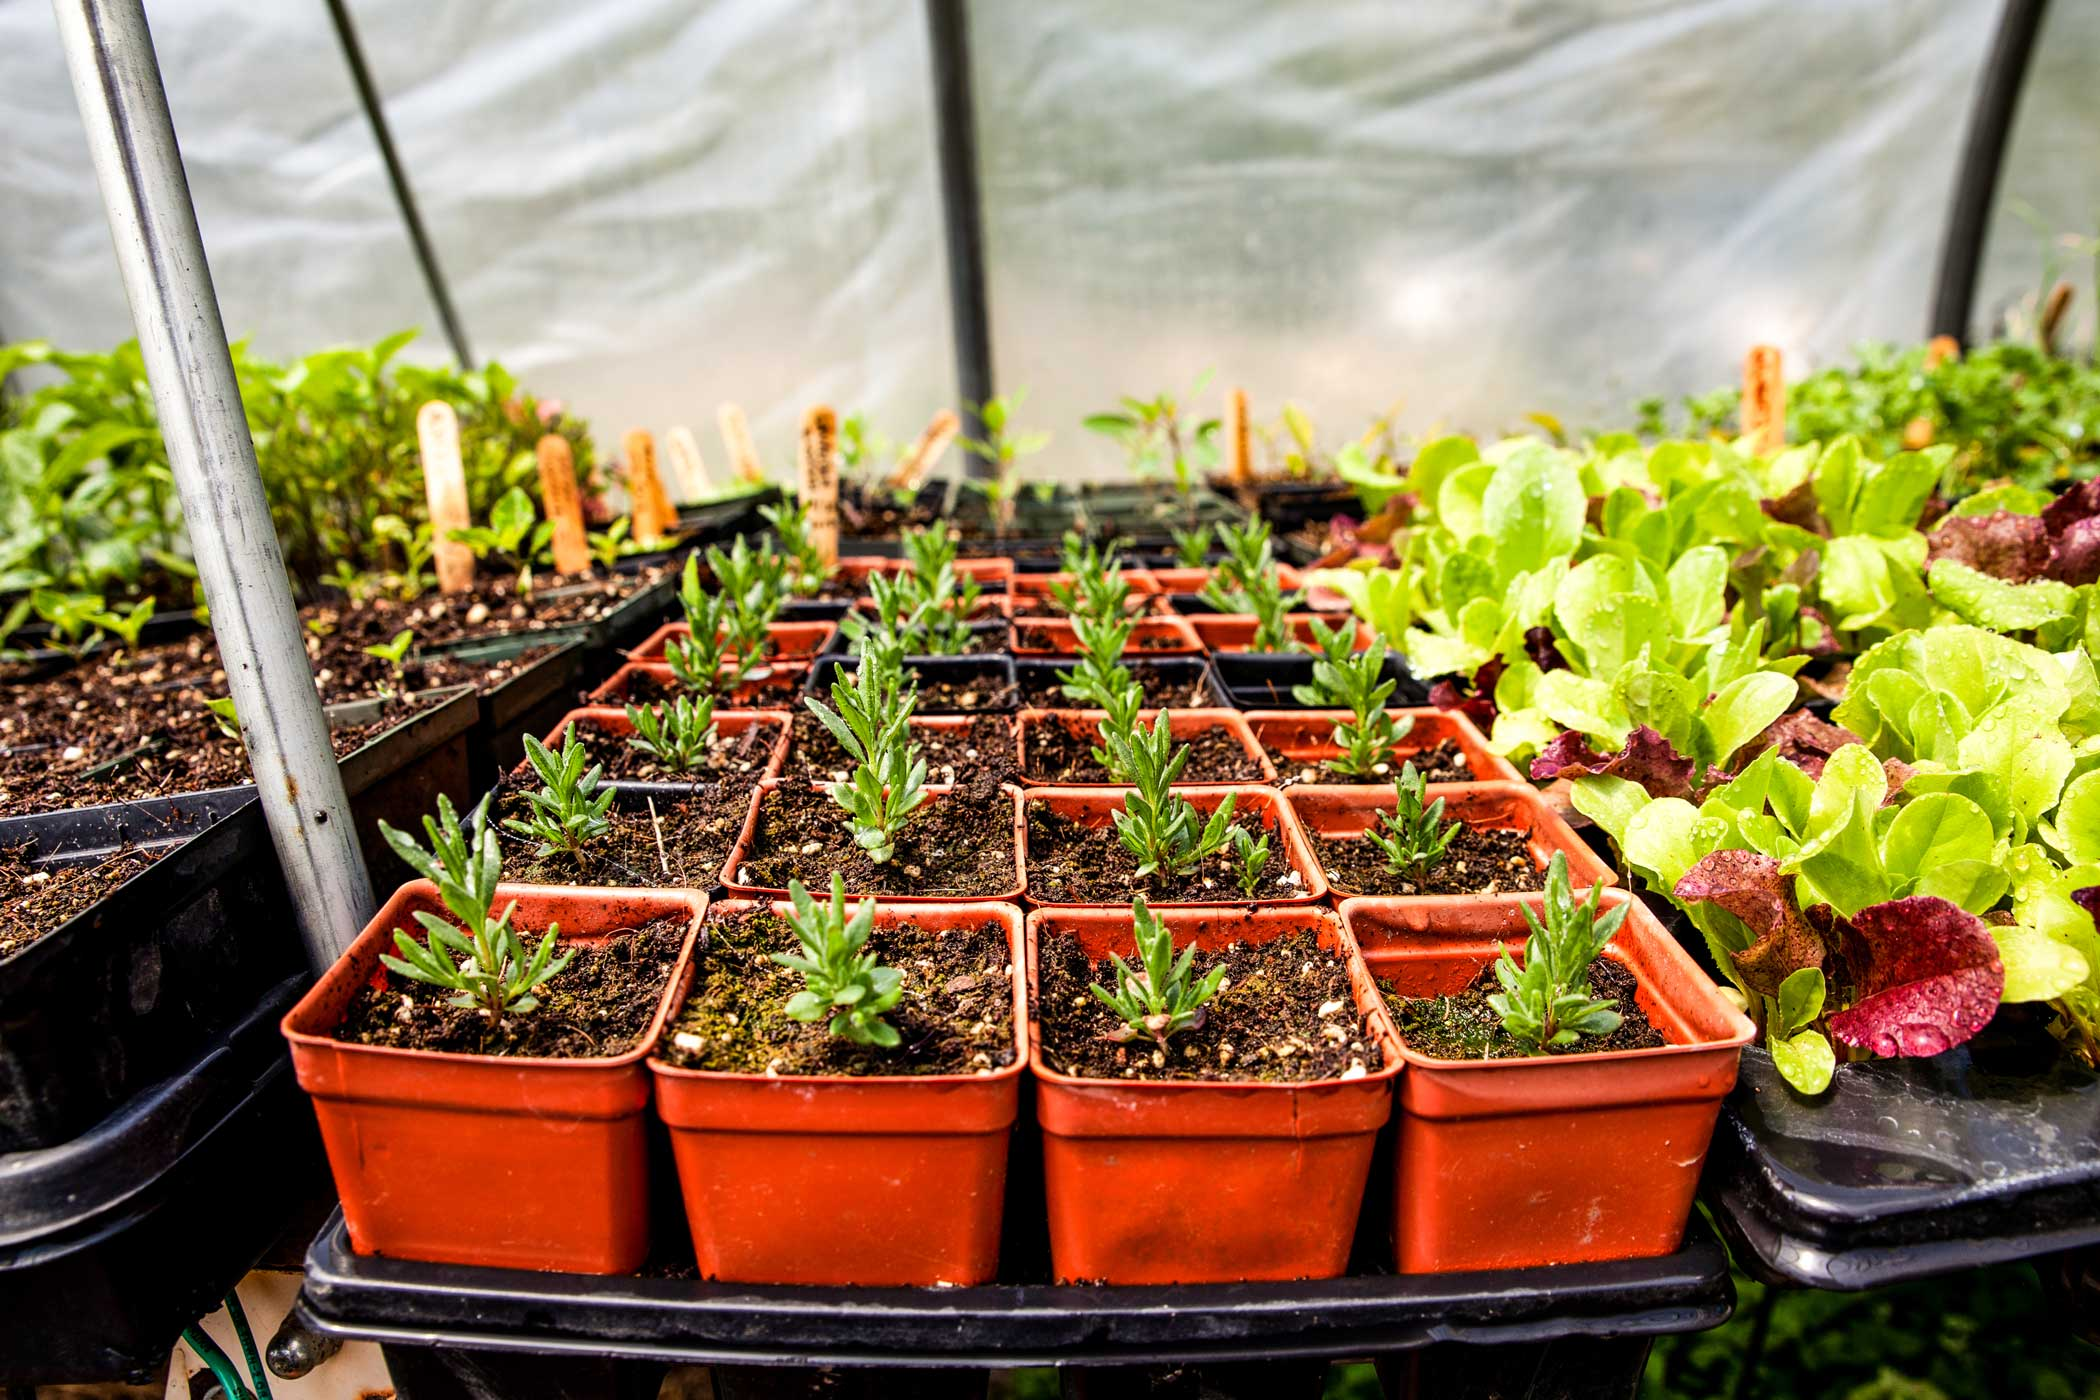 A set of individually potted budding rosemary plants in a nursery.